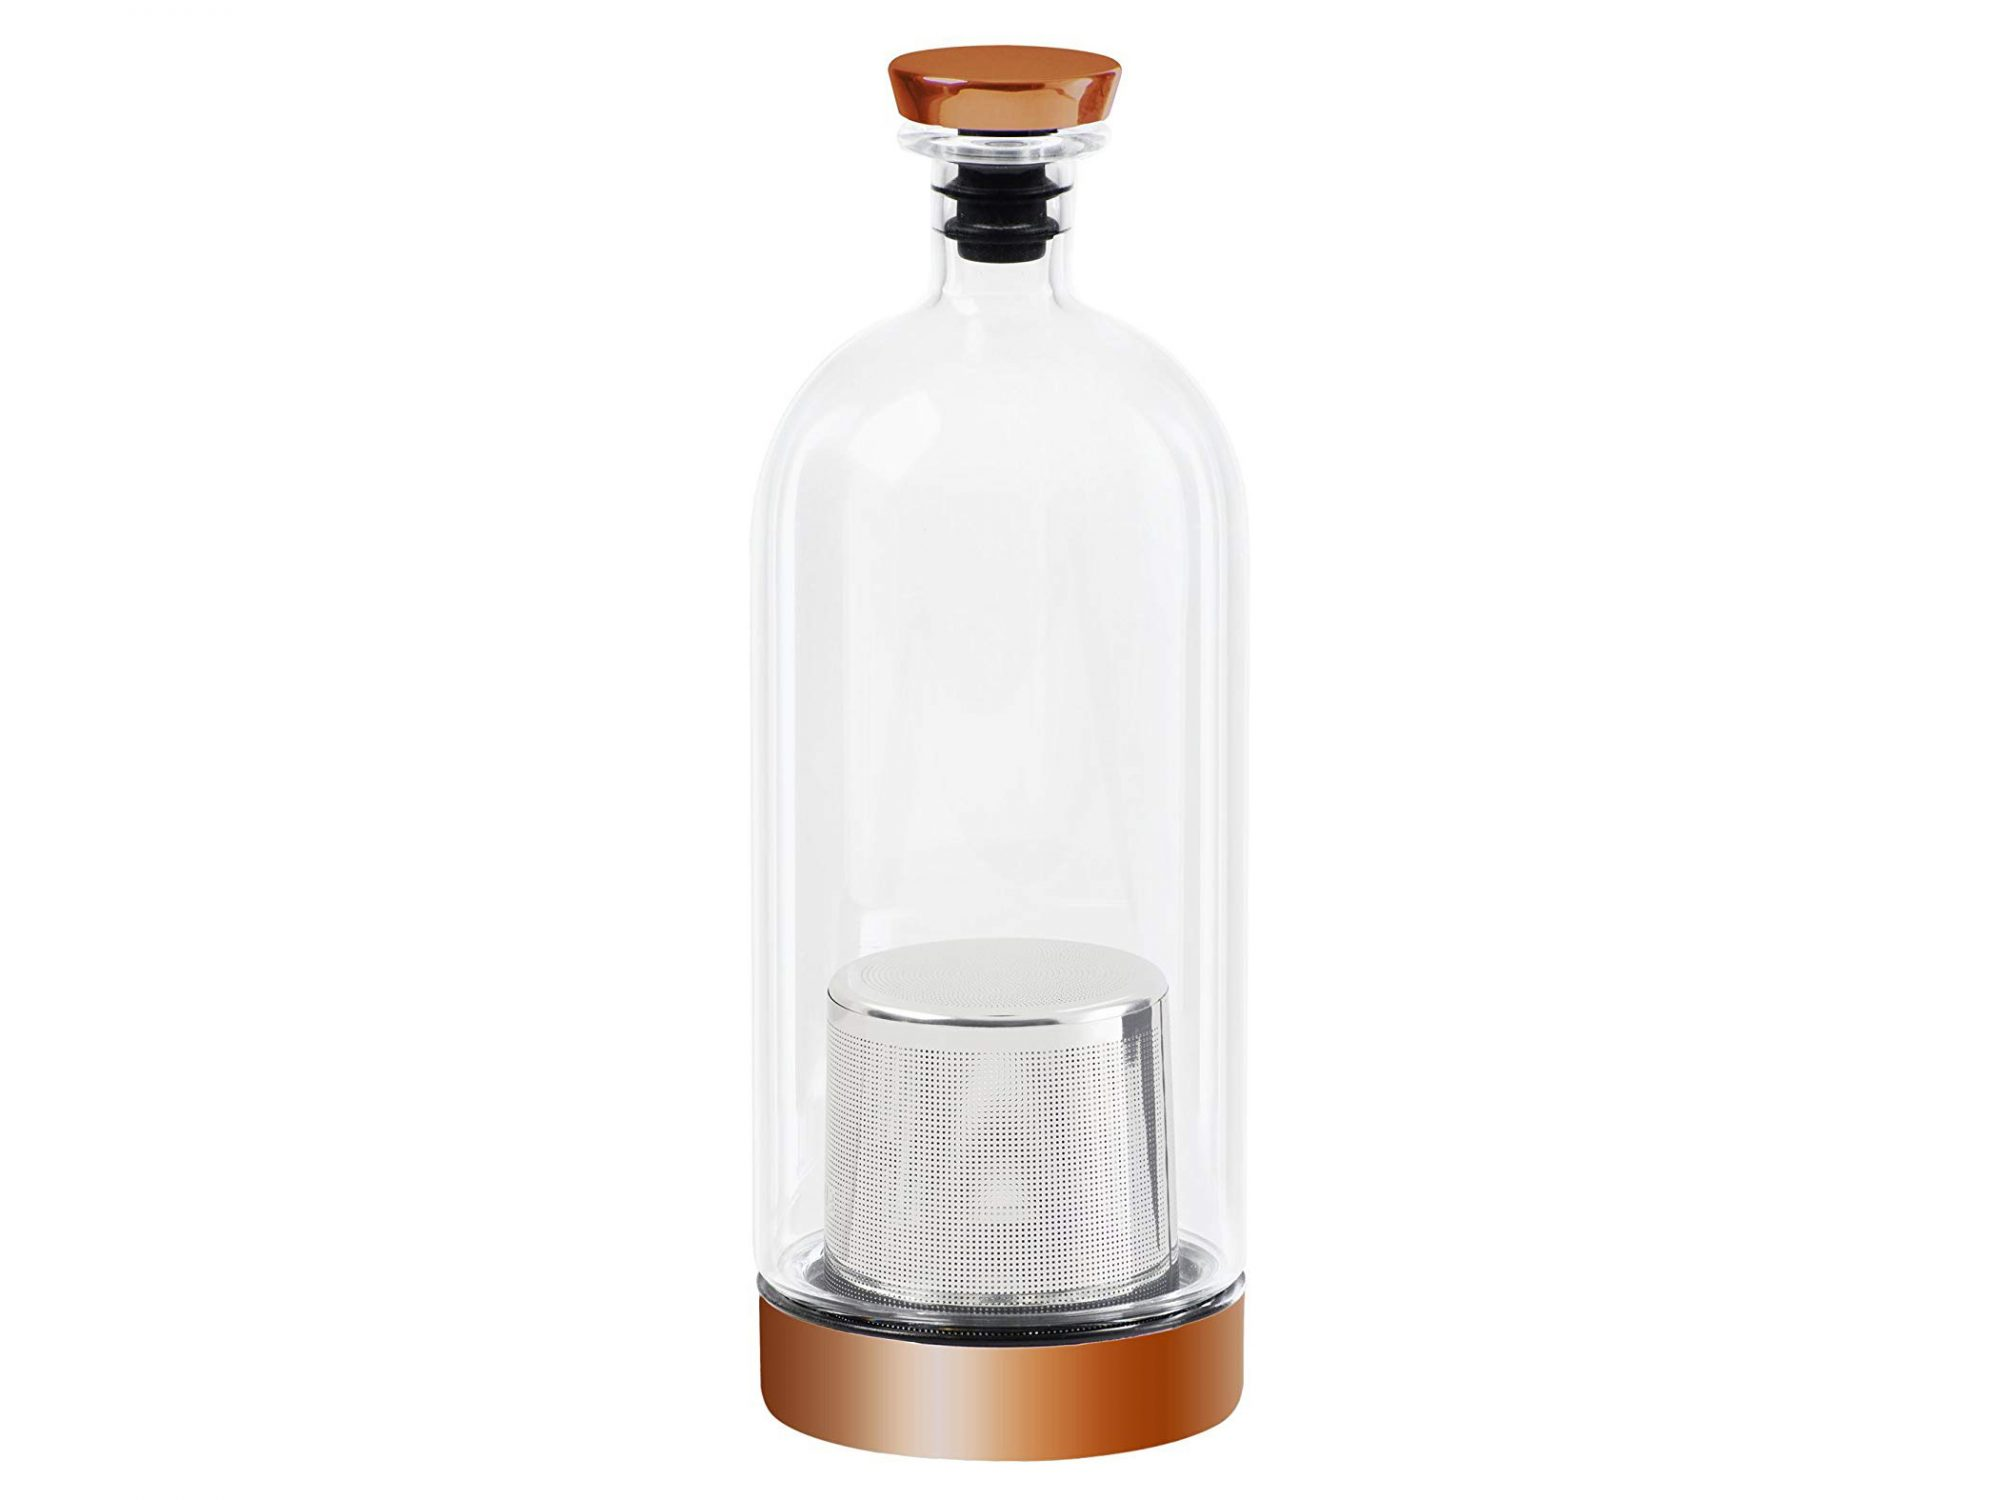 Infusion Vessel - glass bottle with brass lid and base with metal net inside